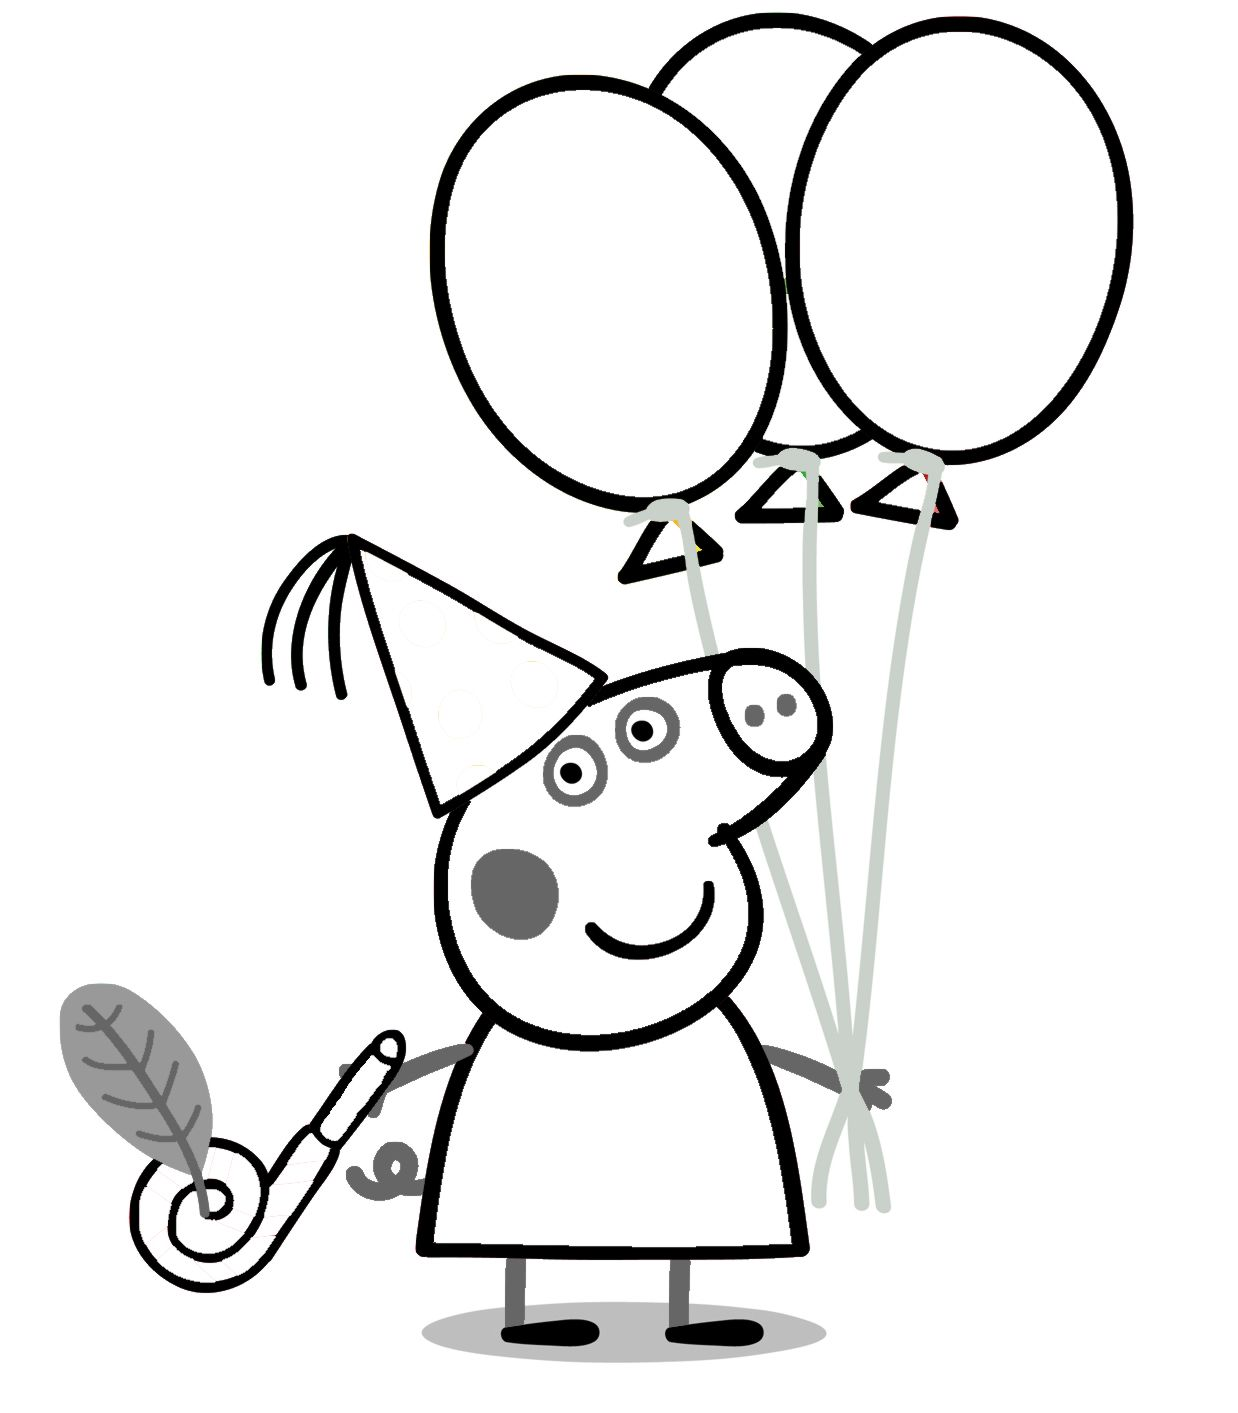 Peppa pig color pages - Peppa Pig Coloring Pages Google Search